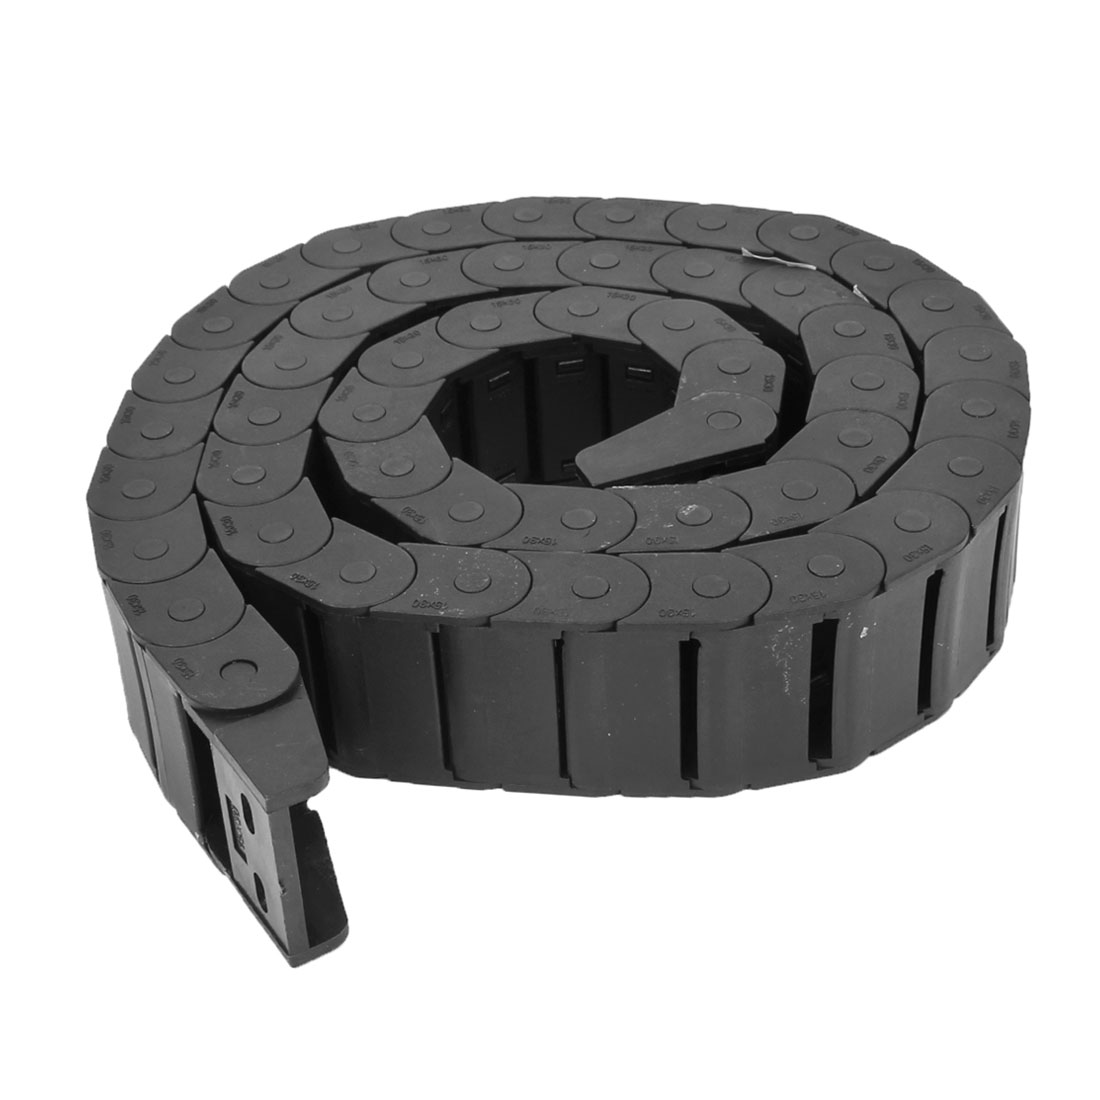 Machine 1.04M Black Plastic Towline Cable Carrier Drag Chain